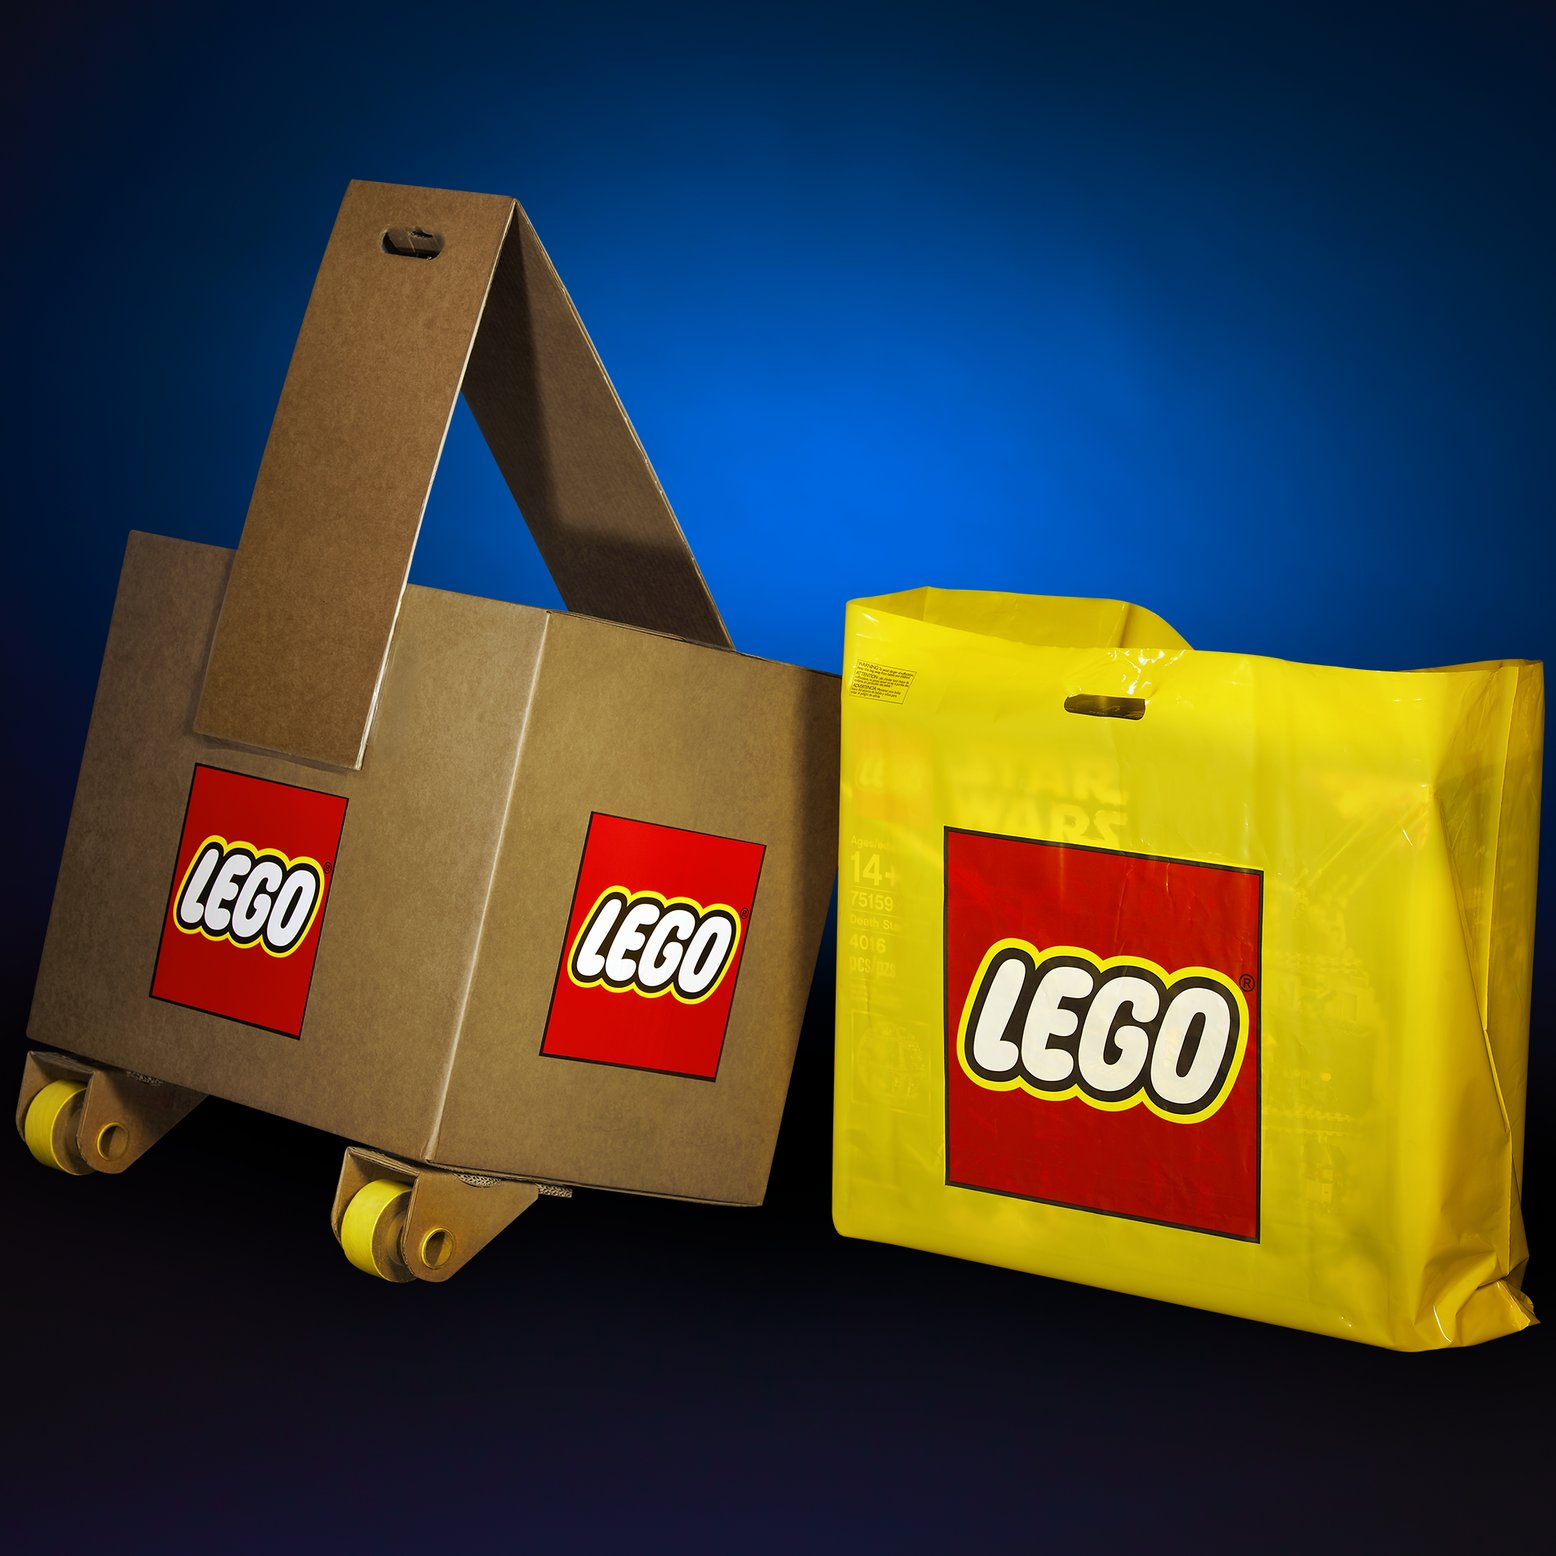 Teaser #5 - The LEGO Star Wars Death Star fits in our yellow bag, but we have to apply wheels so shoppers can carry the next LEGO Star Wars set! -LEGO Group [August 29, 2017]